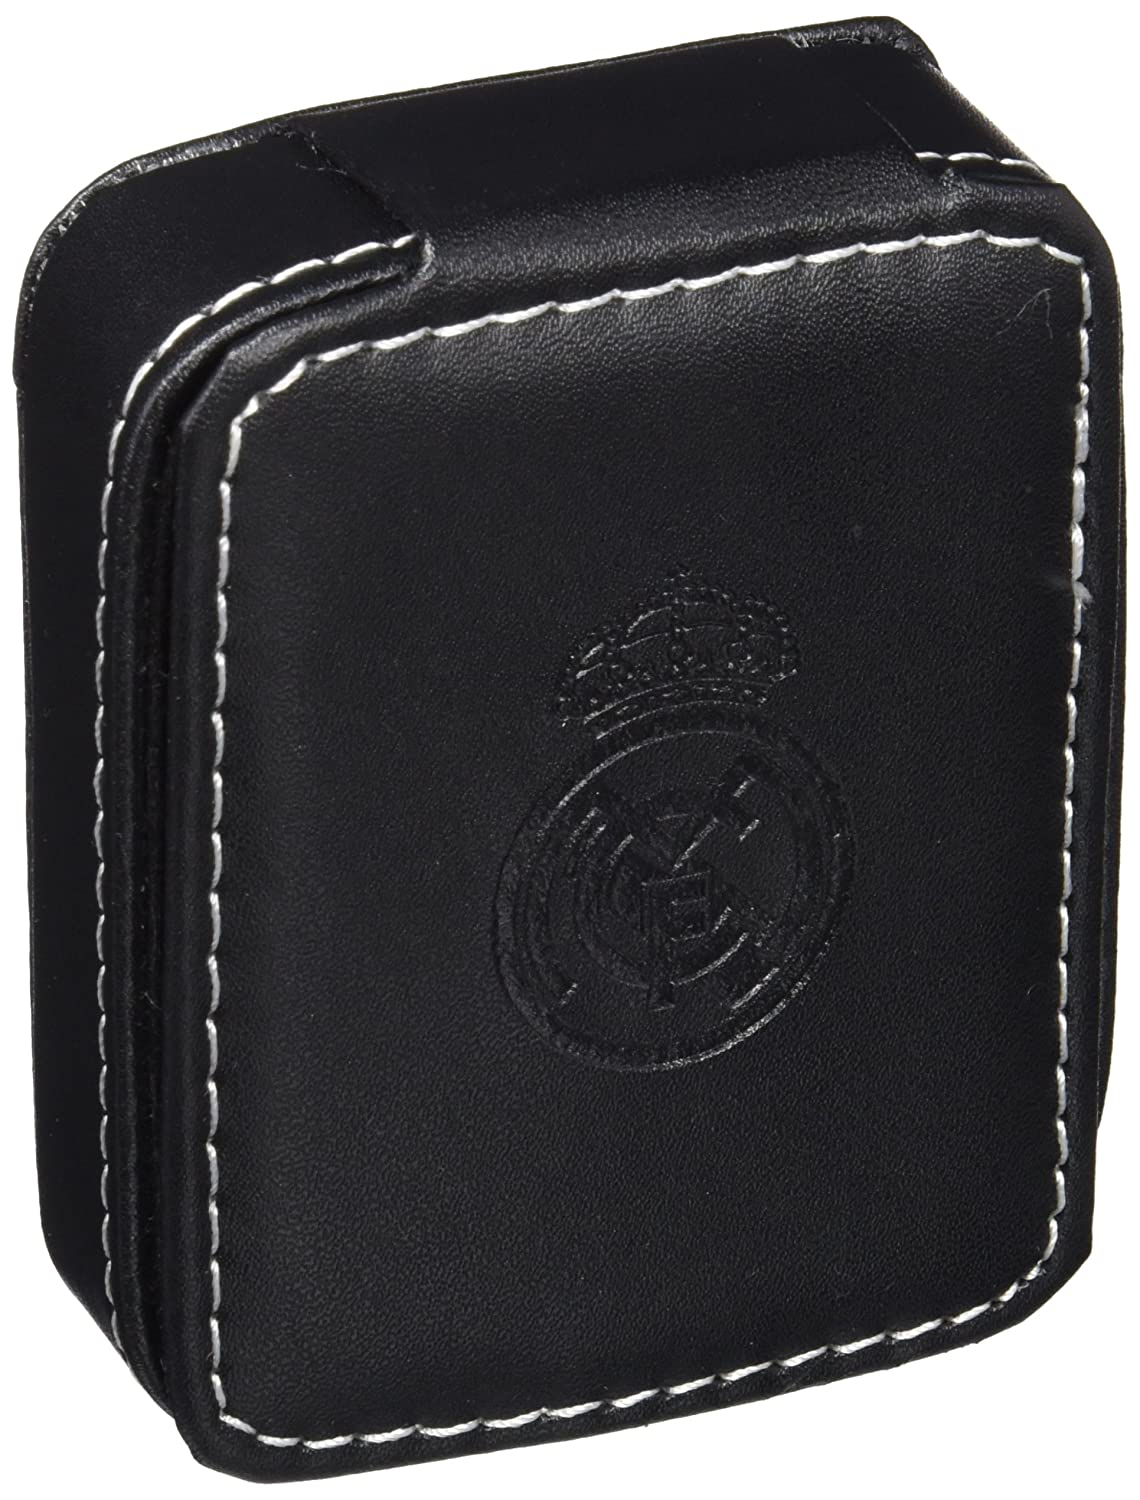 Amazon.com : Full 90 Reloj despertador Real Madrid viaje : Office Products